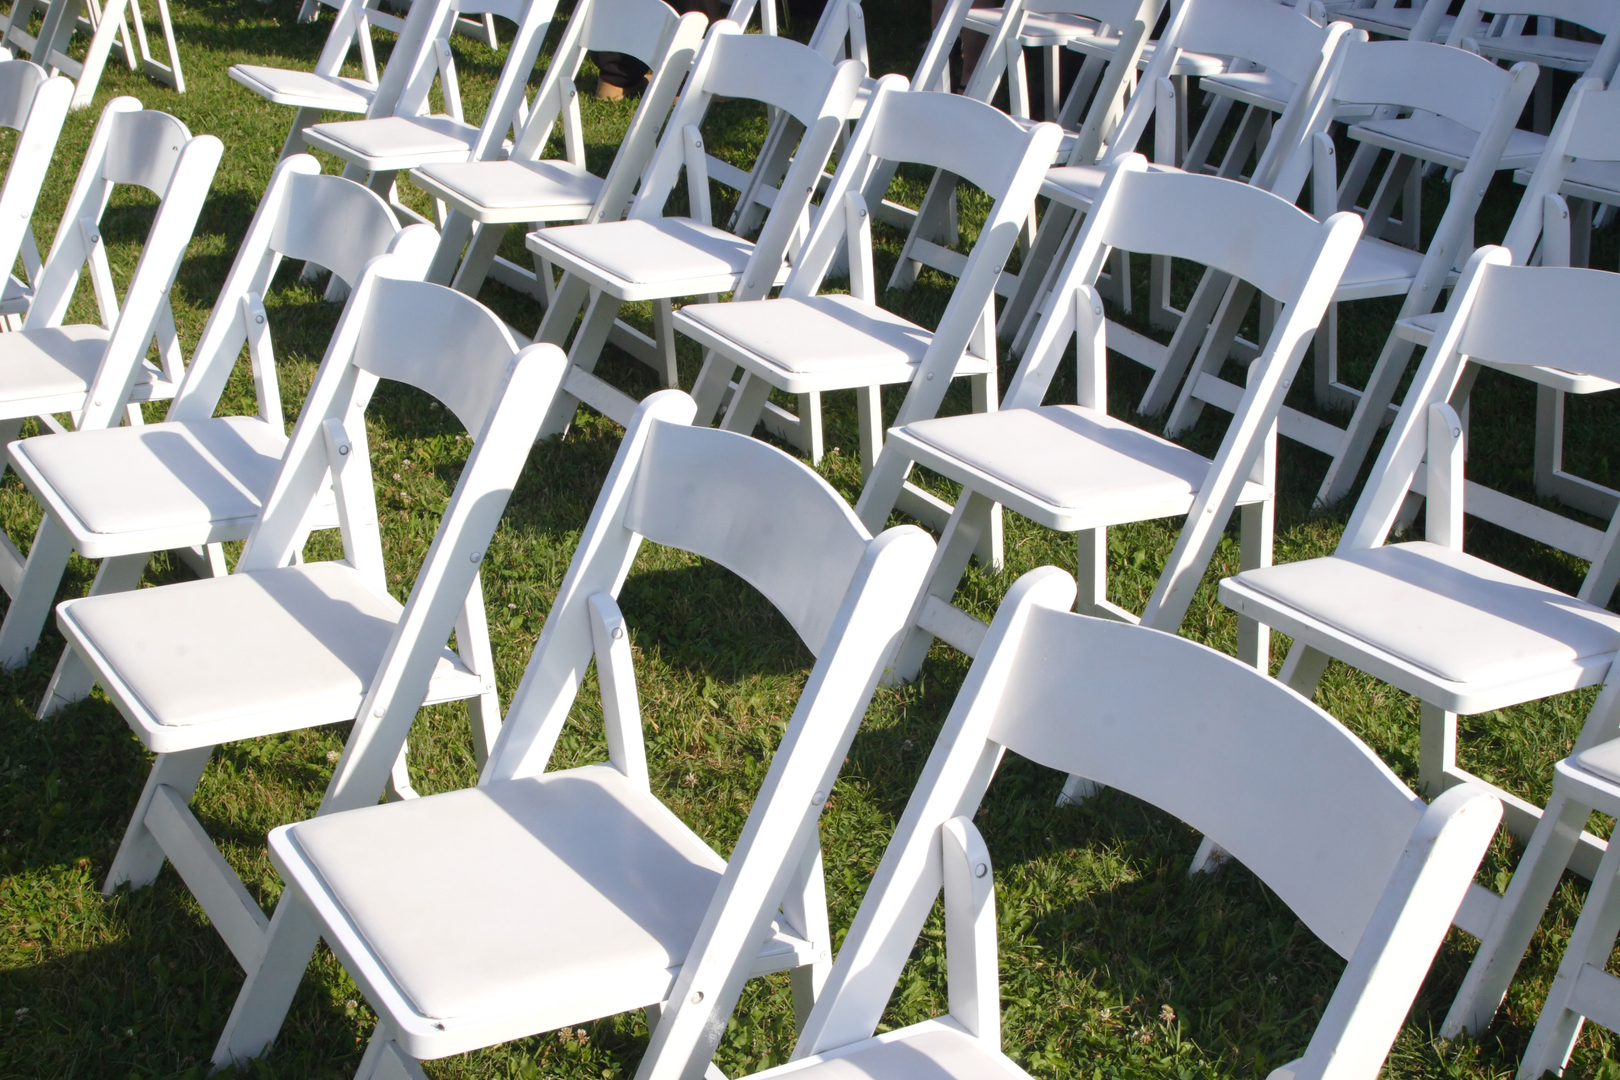 Folding chair covers wholesale under 1 - Folding Chair Covers Wholesale Under 1 28